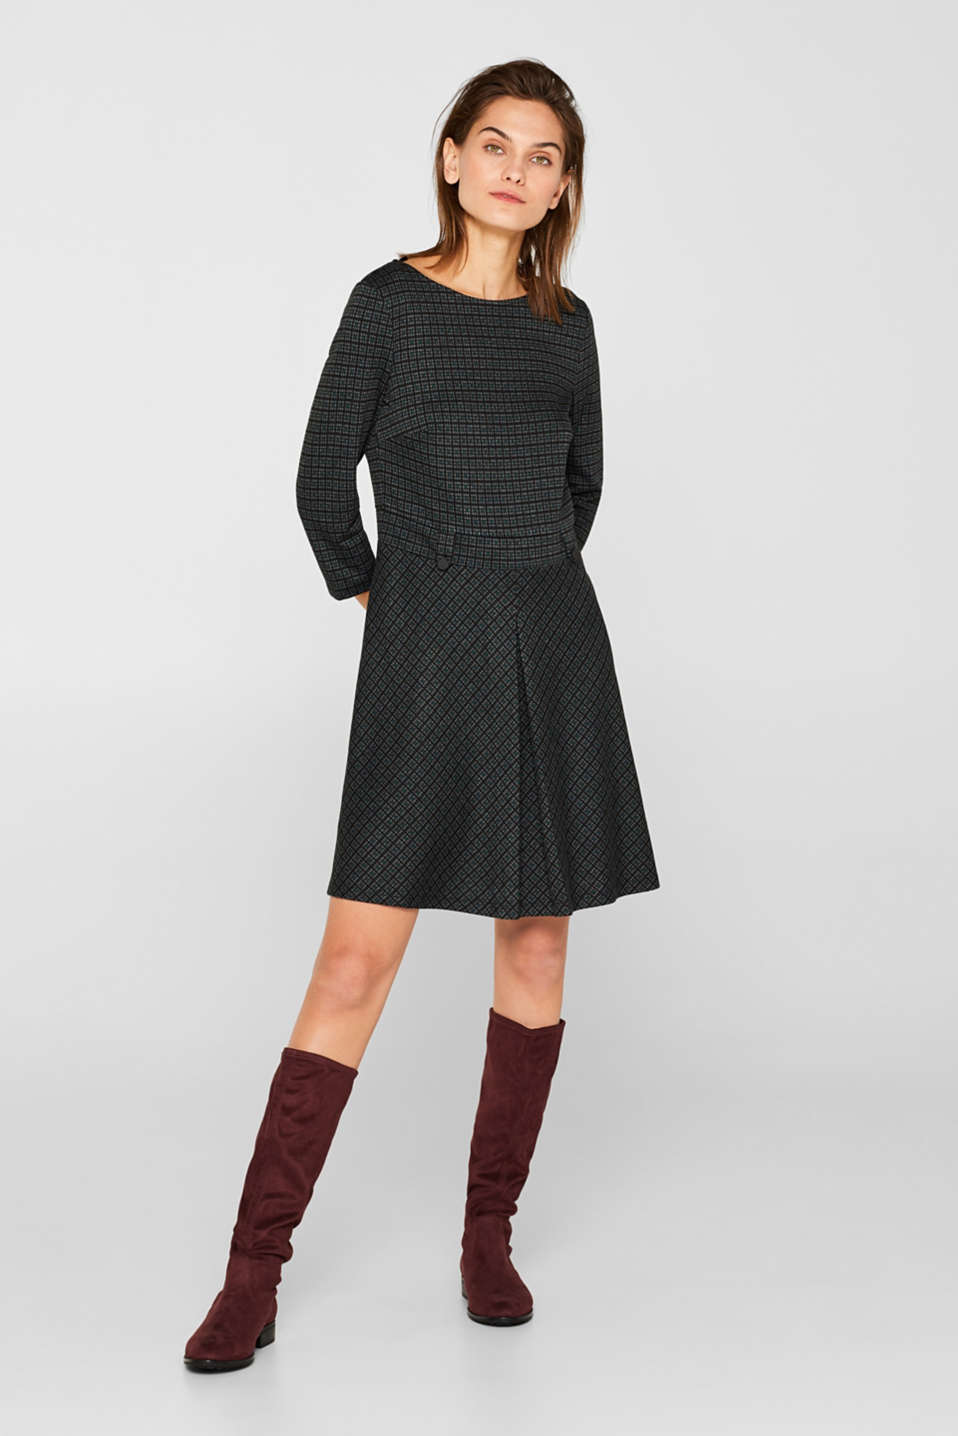 A-line check stretch jersey dress, DARK TEAL GREEN, detail image number 1